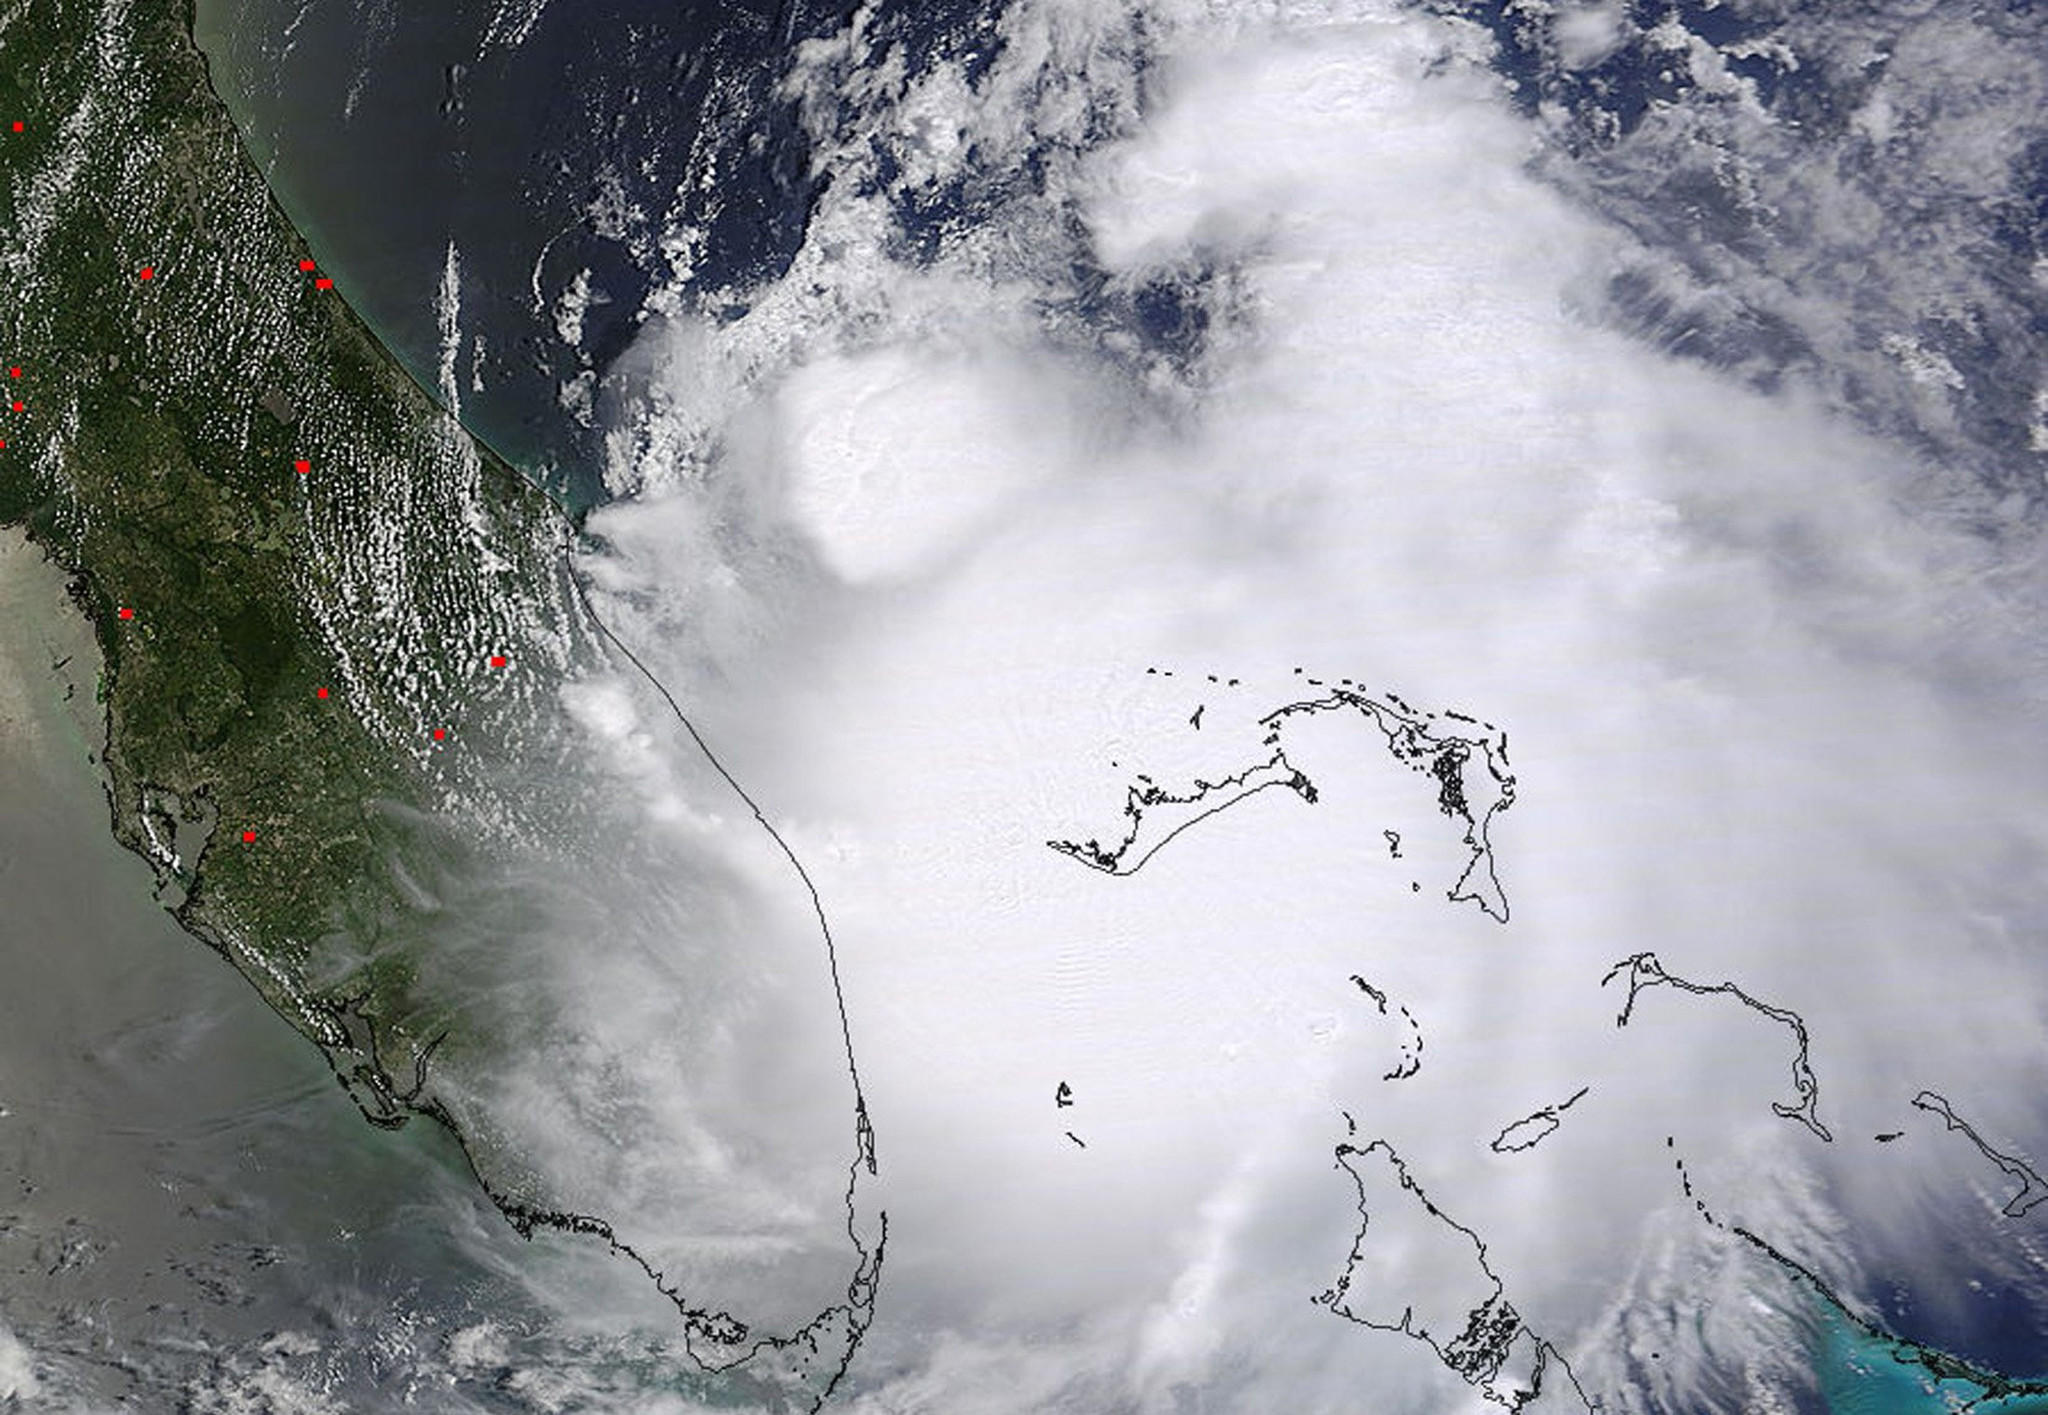 Tropical Storm Arthur is pictured off the east coast of Florida in this July 1, 2014 NASA handout satellite photo. Arthur was expected to reach hurricane strength by Thursday, dousing some July 4 holiday plans on the U.S. East Coast as officials closed beaches and tourist sites and delayed fireworks shows in anticipation of heavy rain and fierce winds. Picture taken July 1, 2014. REUTERS/NASA/Handout via Reuters (UNITED STATES - Tags: ENVIRONMENT SCIENCE TECHNOLOGY) ATTENTION EDITORS - THIS PICTURE WAS PROVIDED BY A THIRD PARTY. REUTERS IS UNABLE TO INDEPENDENTLY VERIFY THE AUTHENTICITY, CONTENT, LOCATION OR DATE OF THIS IMAGE. THIS PICTURE WAS PROCESSED BY REUTERS TO ENHANCE QUALITY. AN UNPROCESSED VERSION WILL BE PROVIDED SEPARATELY. NOT FOR SALE FOR MARKETING OR ADVERTISING CAMPAIGNS ORG XMIT: TOR105R ** Usable by BS, CT, DP, FL, HC, MC, OS and HOY **